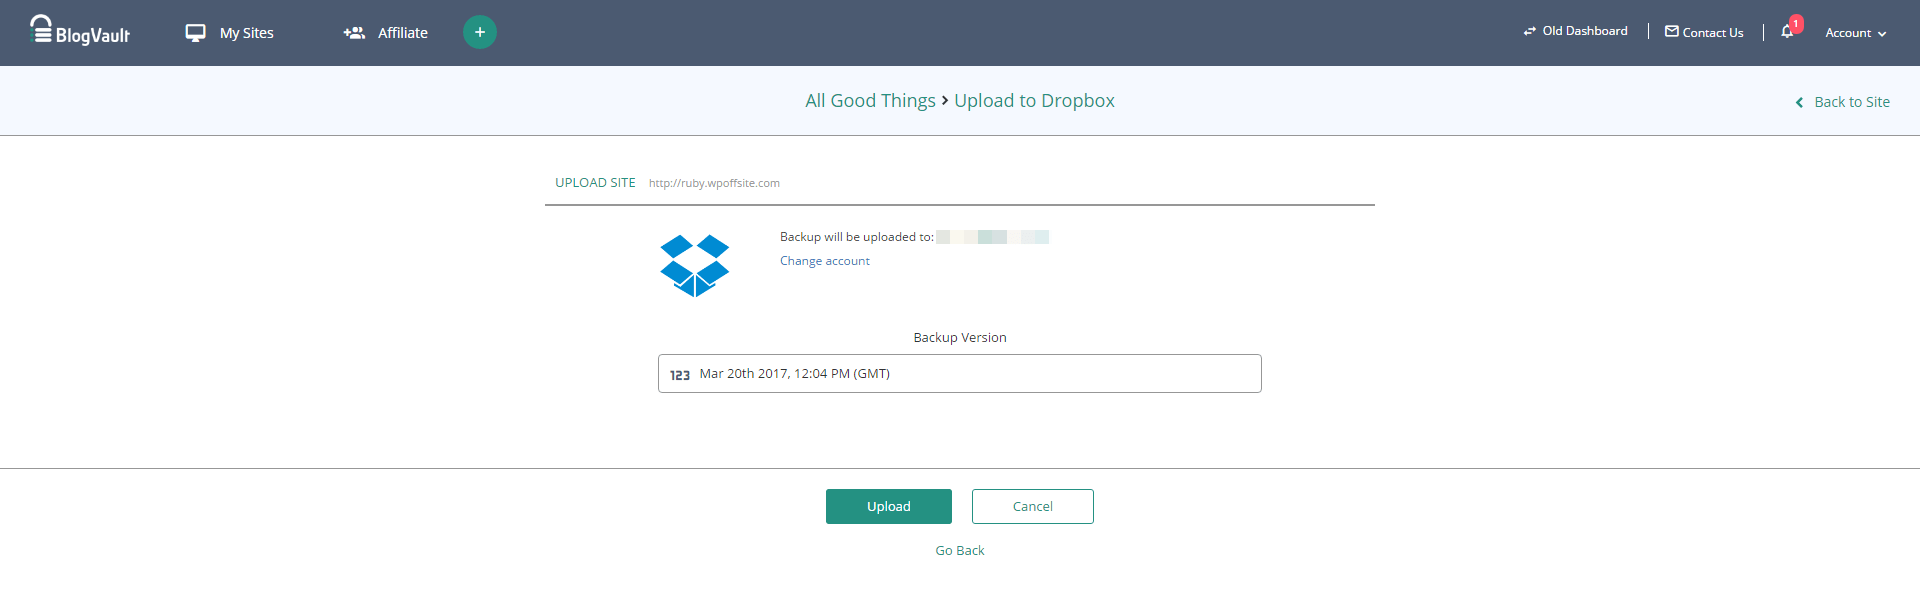 Choose the backup version you want to upload to your Dropbox account